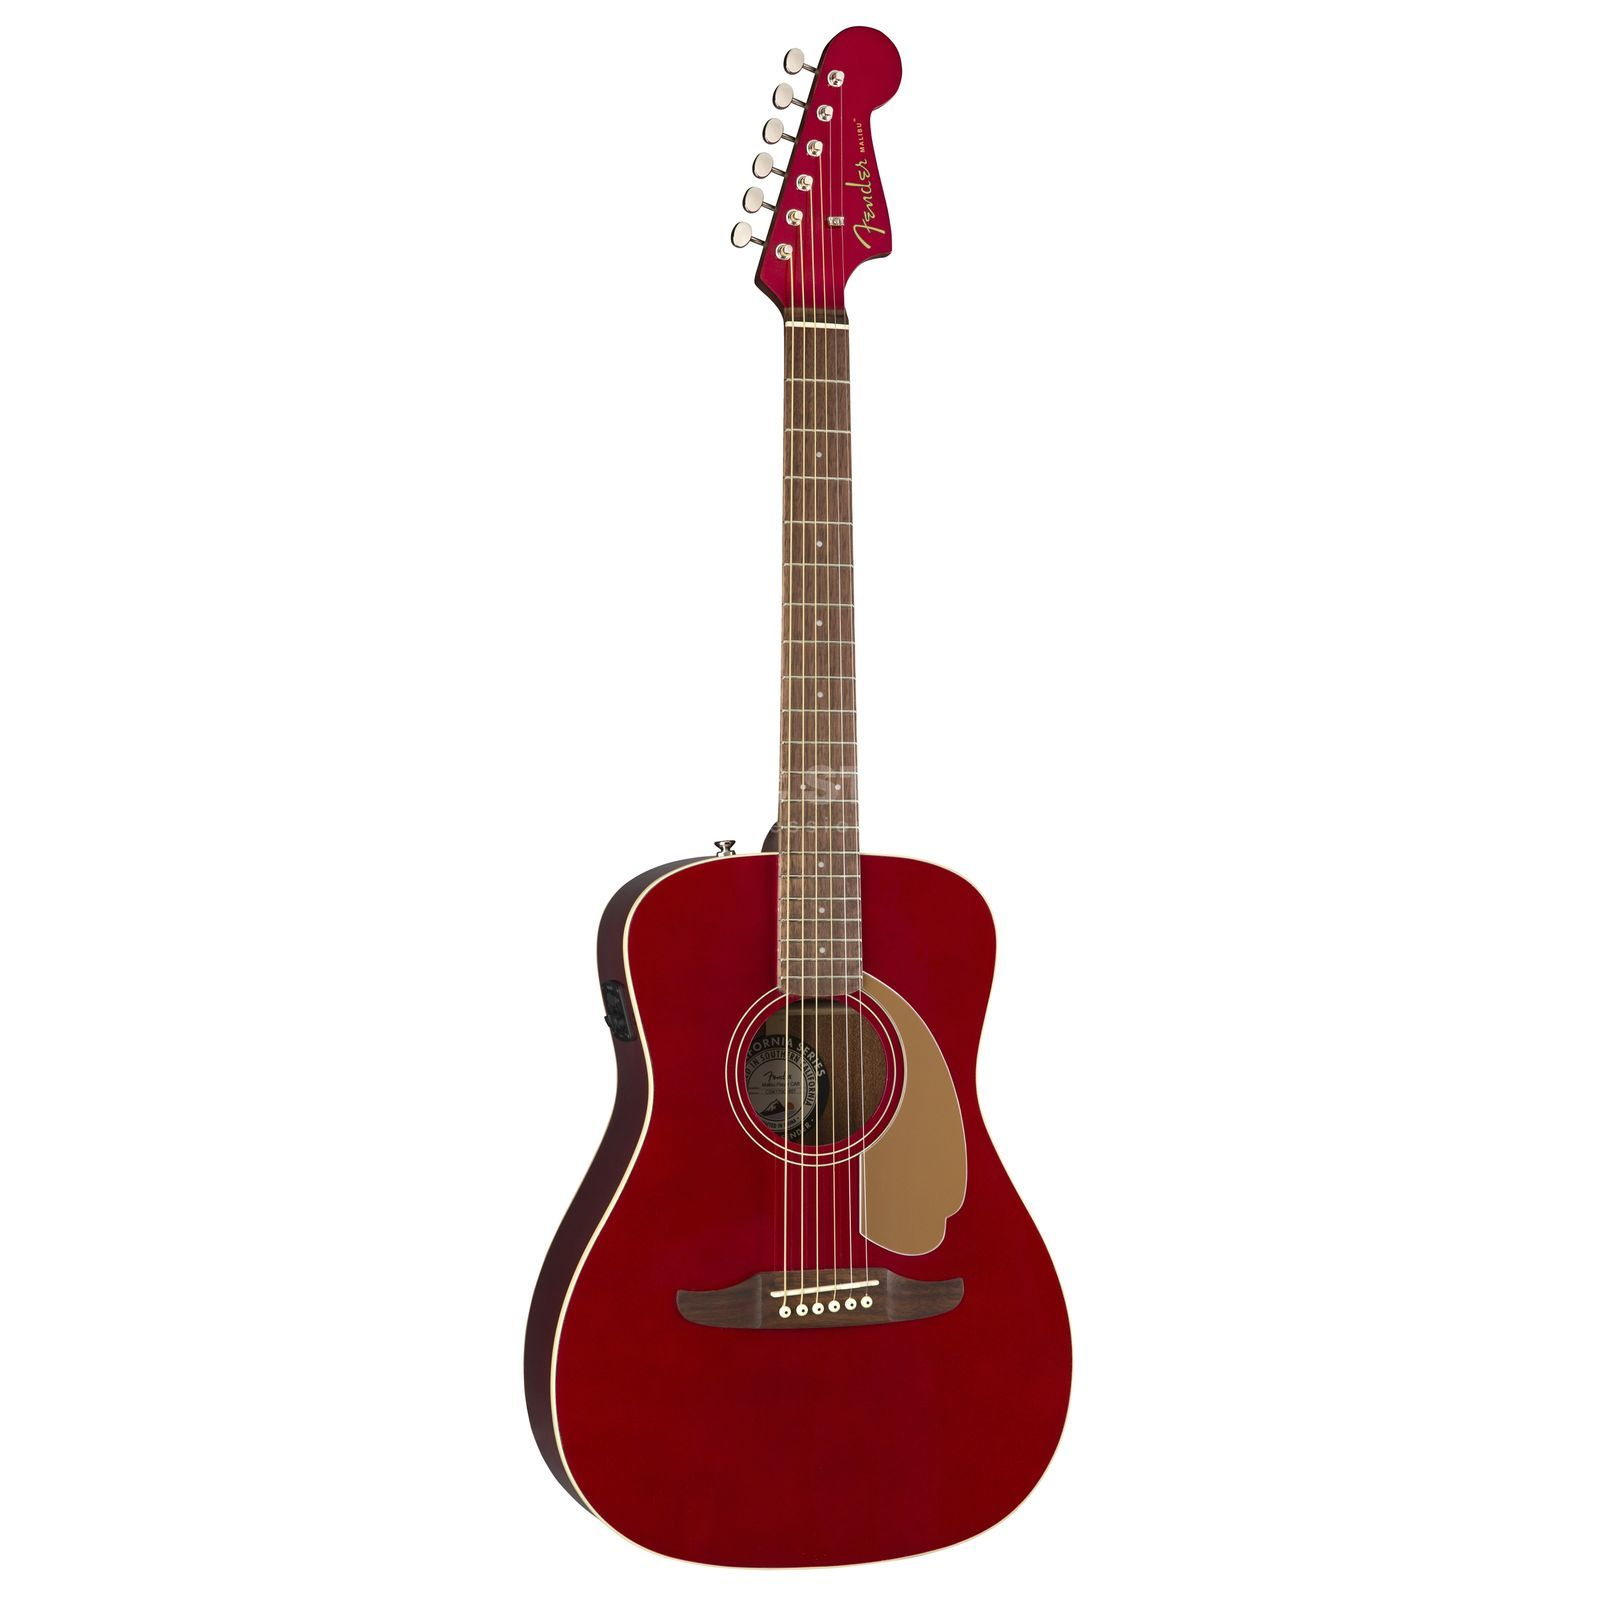 Fender Malibu Player CAR Candy Apple Red Image du produit